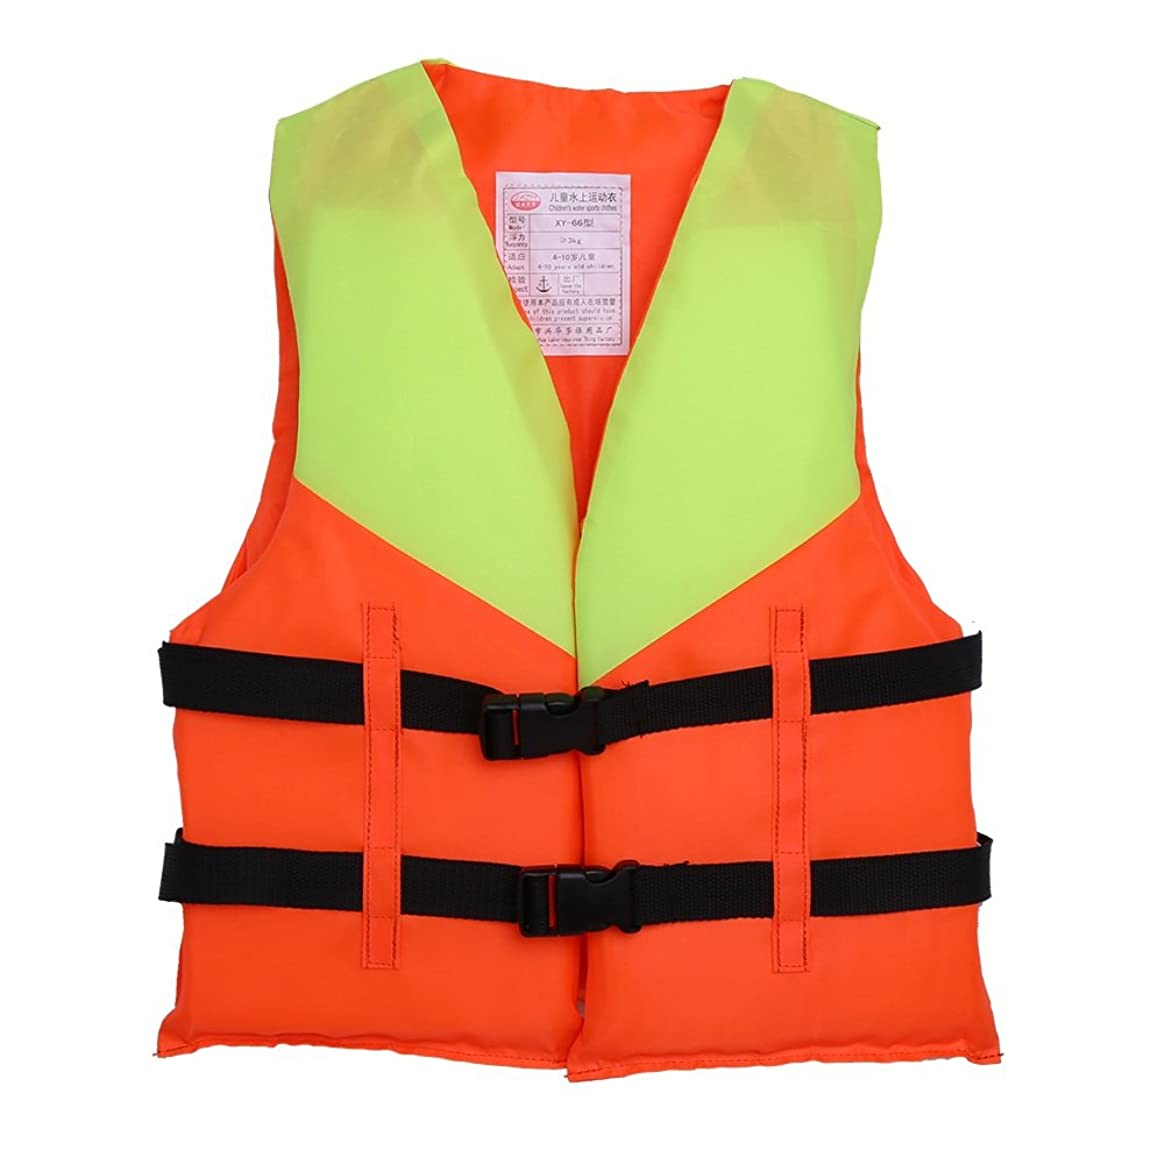 VGEBY Kids Life Jacket Swimming Foam Buoyancy Aid Swimming Boating Kayaking Vest Watersport for 4-10 years Children